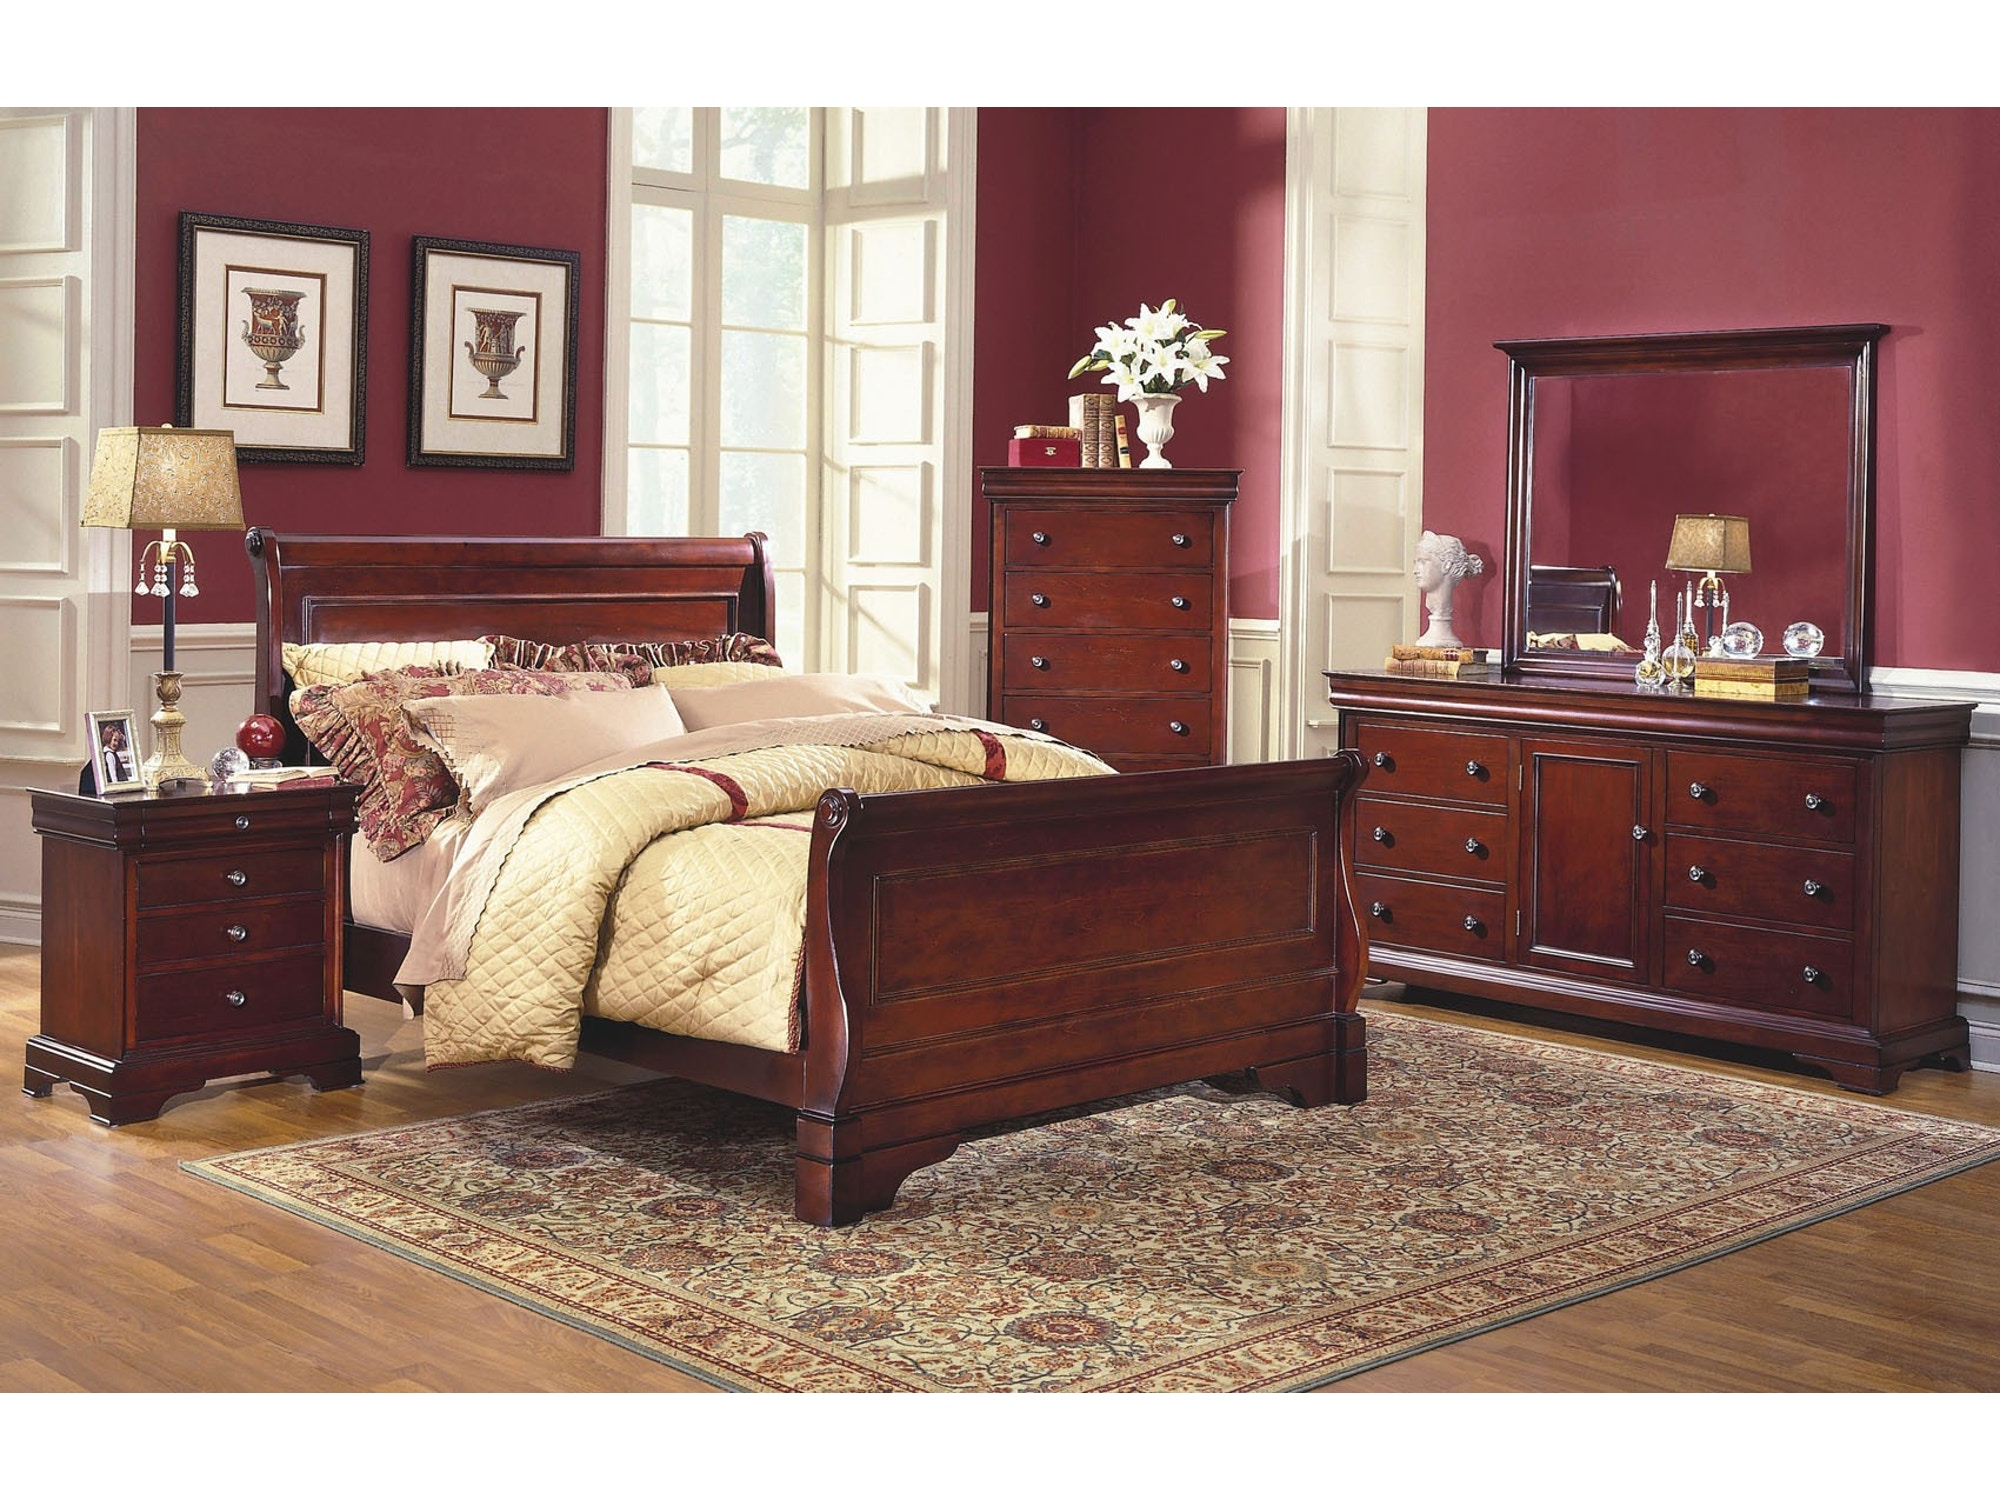 New Classic Home Furnishings Inc. Master Bedroom Sets - Furniture ...